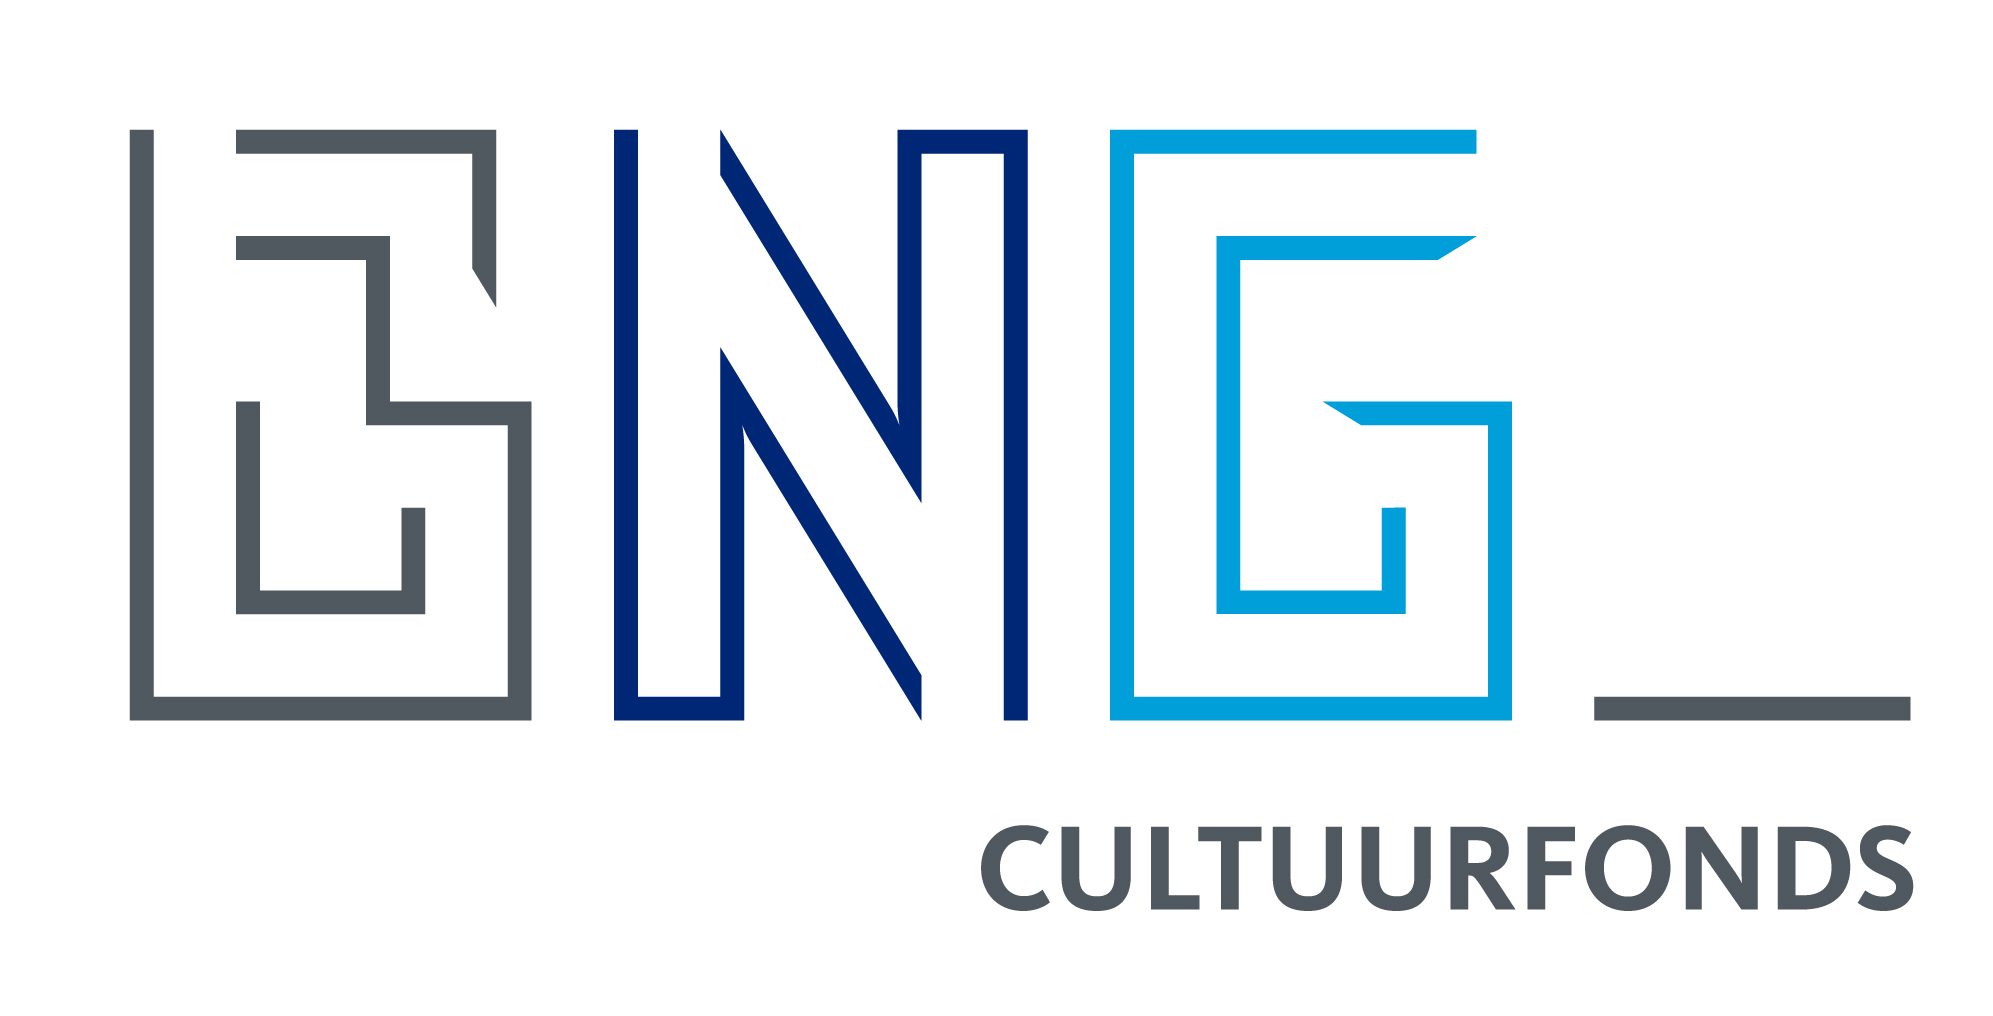 Cultuurfonds BNG